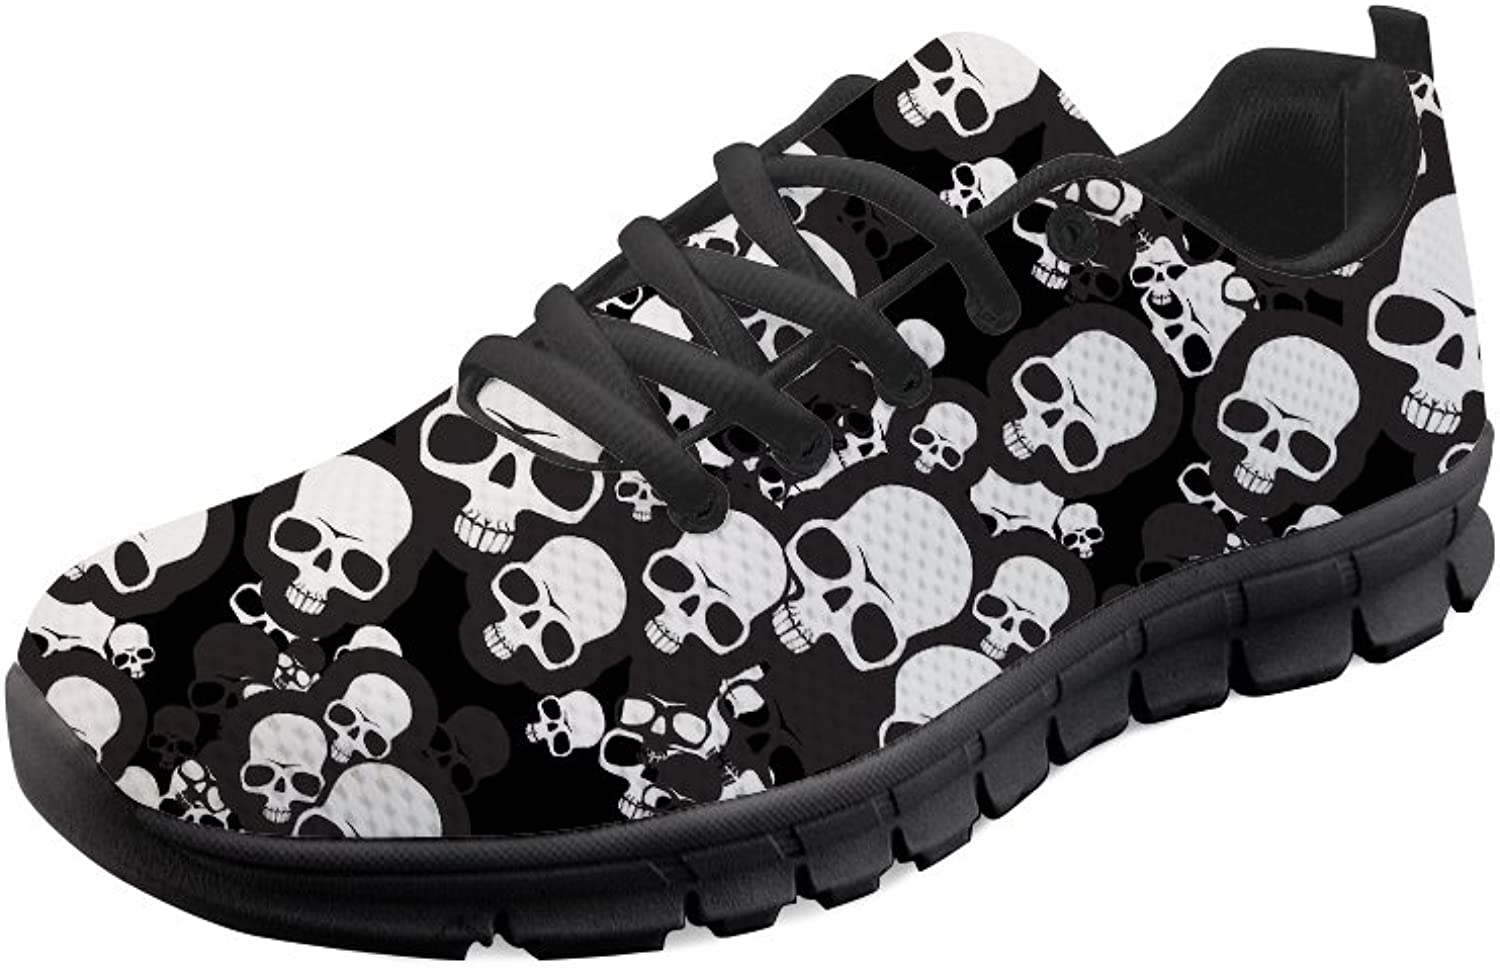 Doginthehole Skull Print Women Sneakers Leisure Lace up Mesh Sport Running shoes